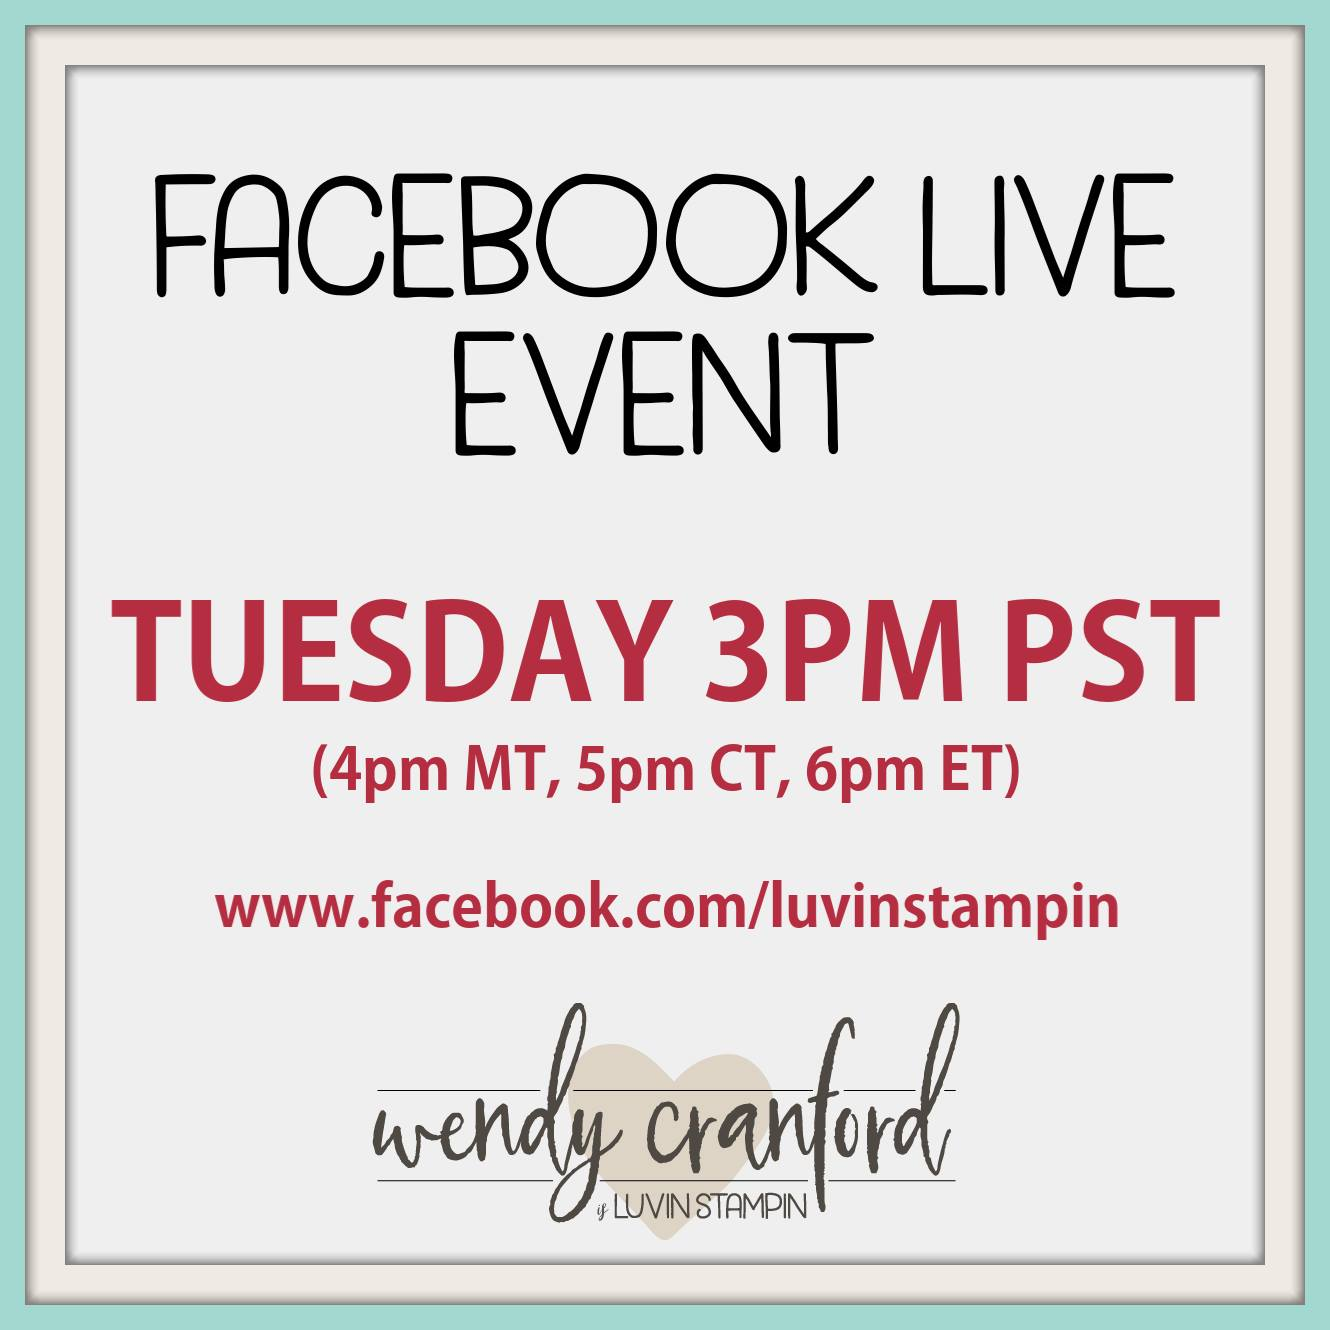 Facebook live event every Tuesday at 3pm PST Wendy Cranford www.luvinstampin.com